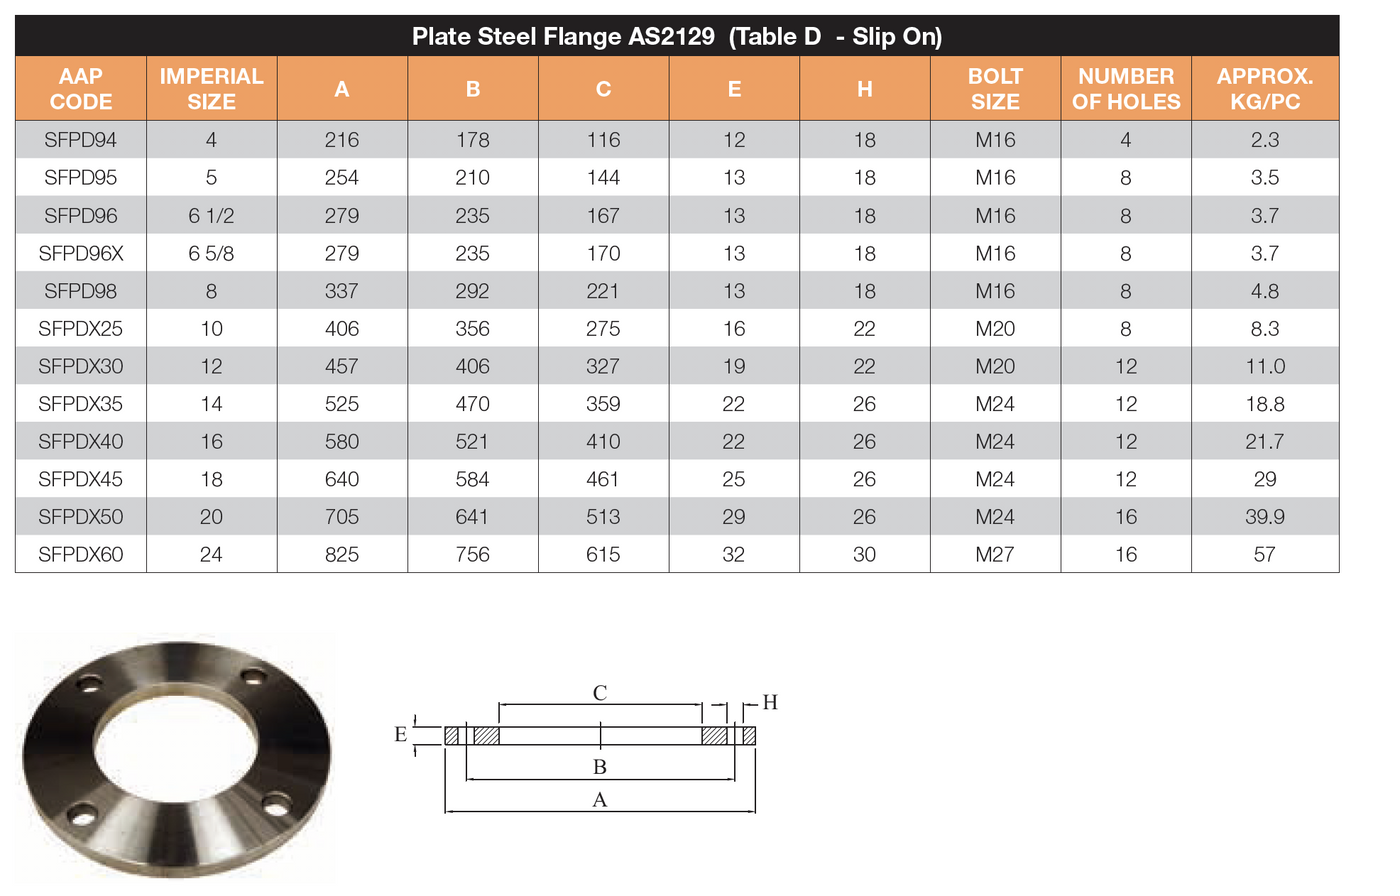 Go flange range slip on weld table d e or h carbon steel for Table e flange